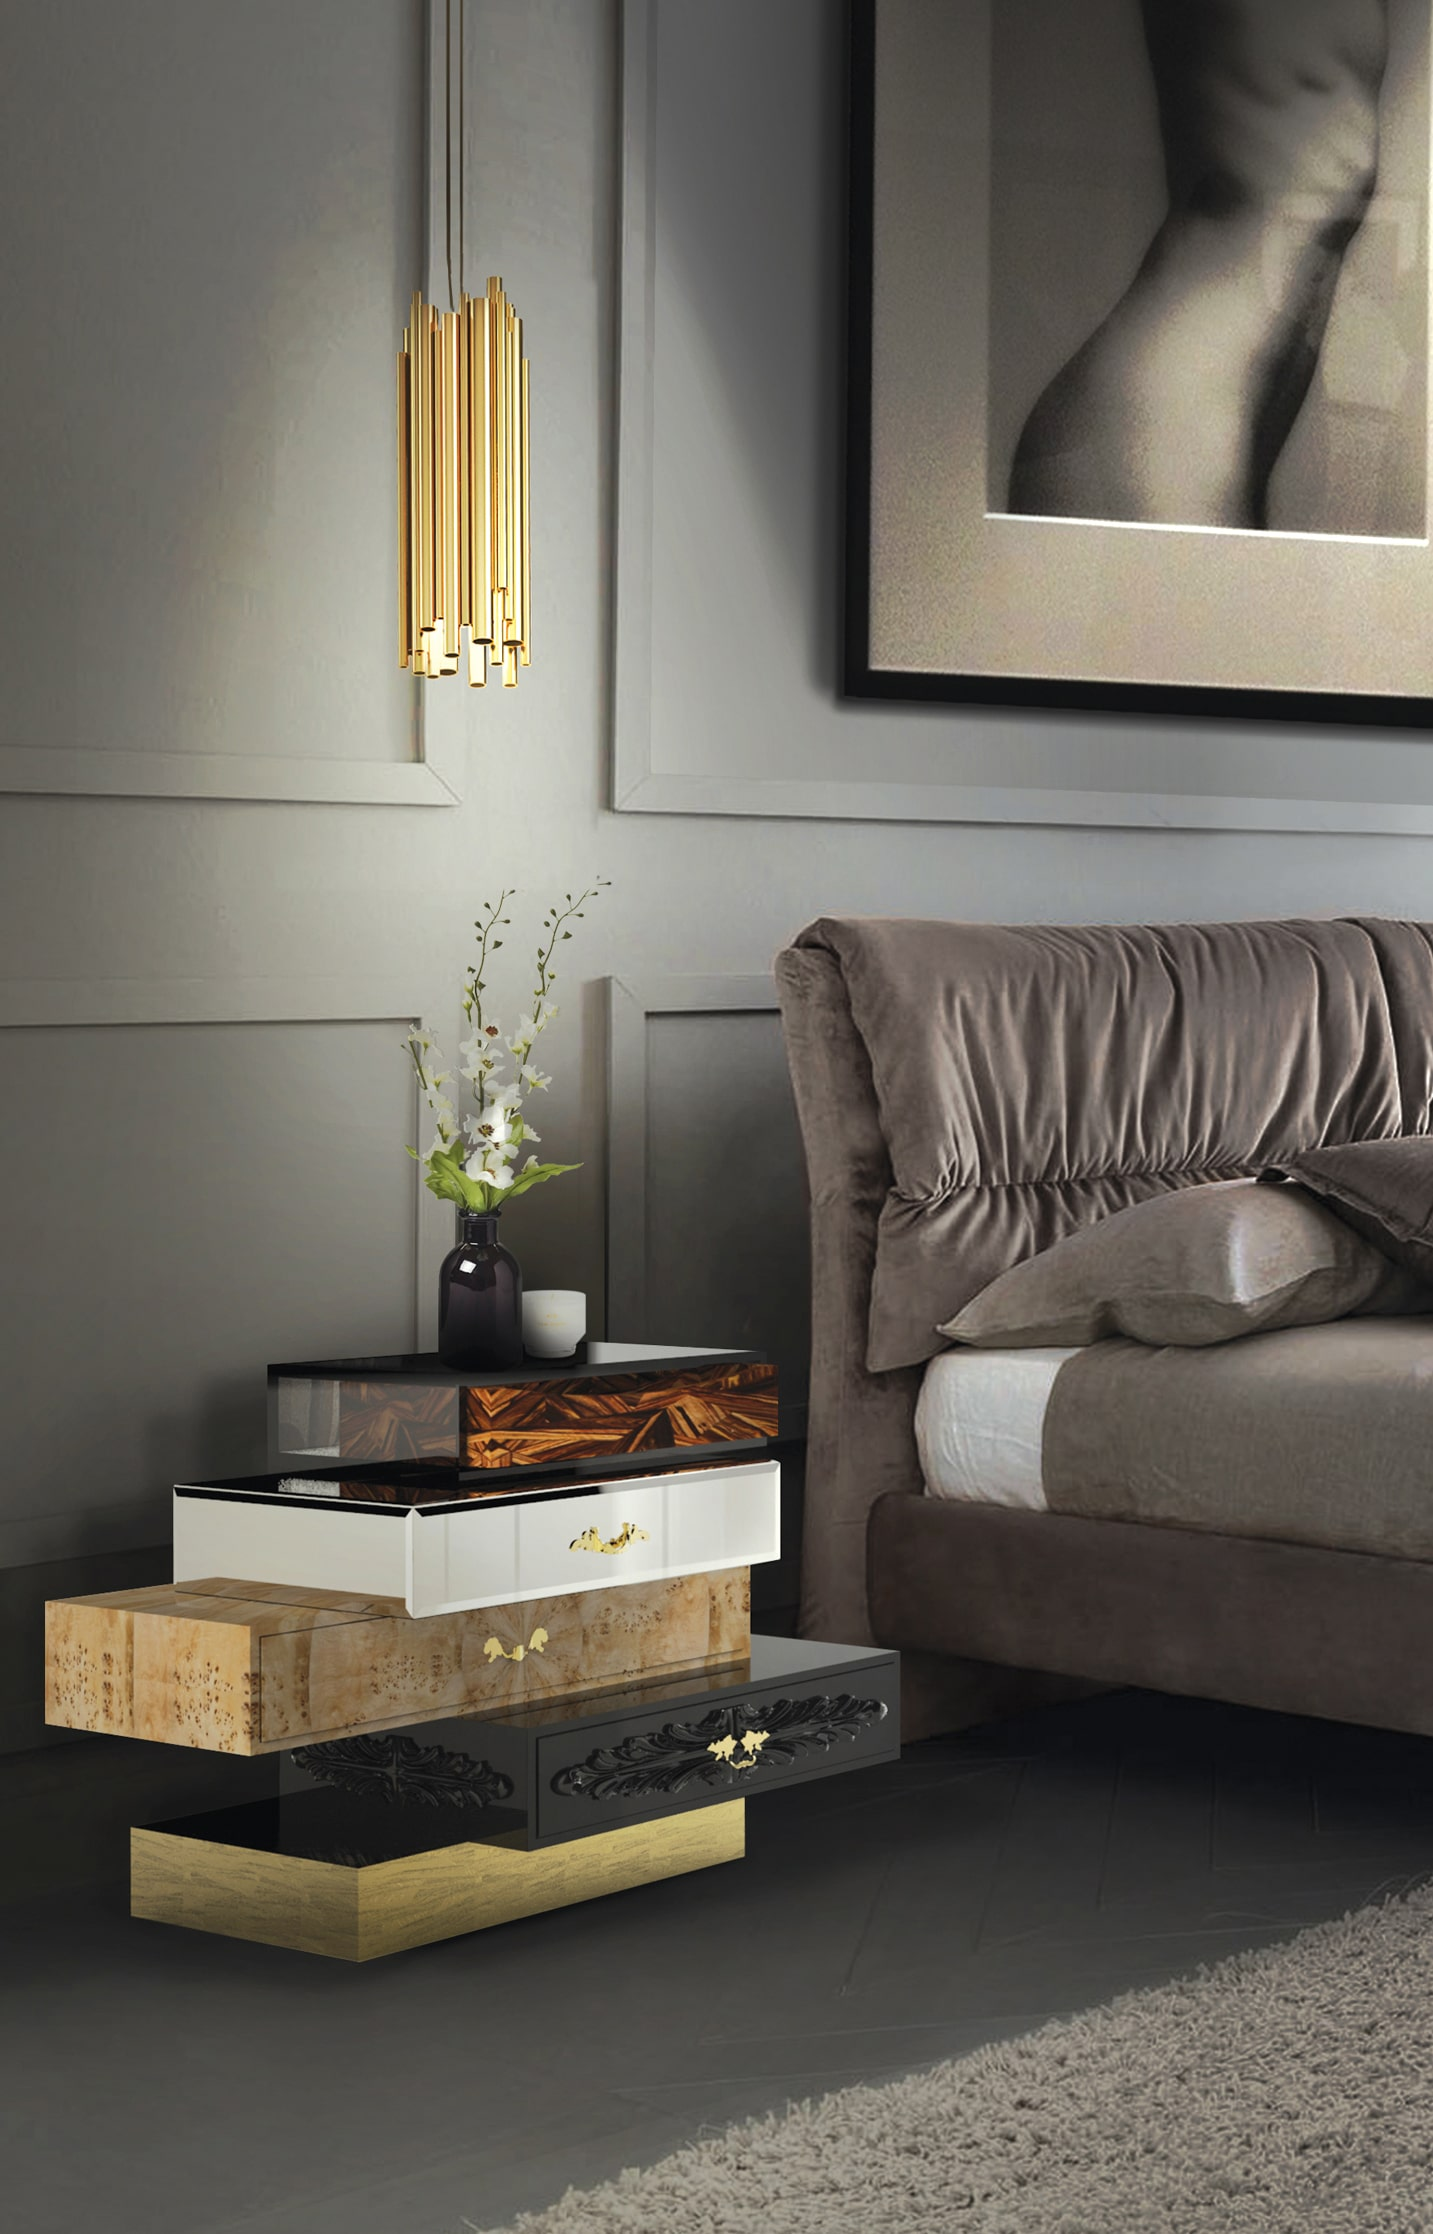 Complete Your Modern Home Decor With The Brubeck Lighting Designs 5